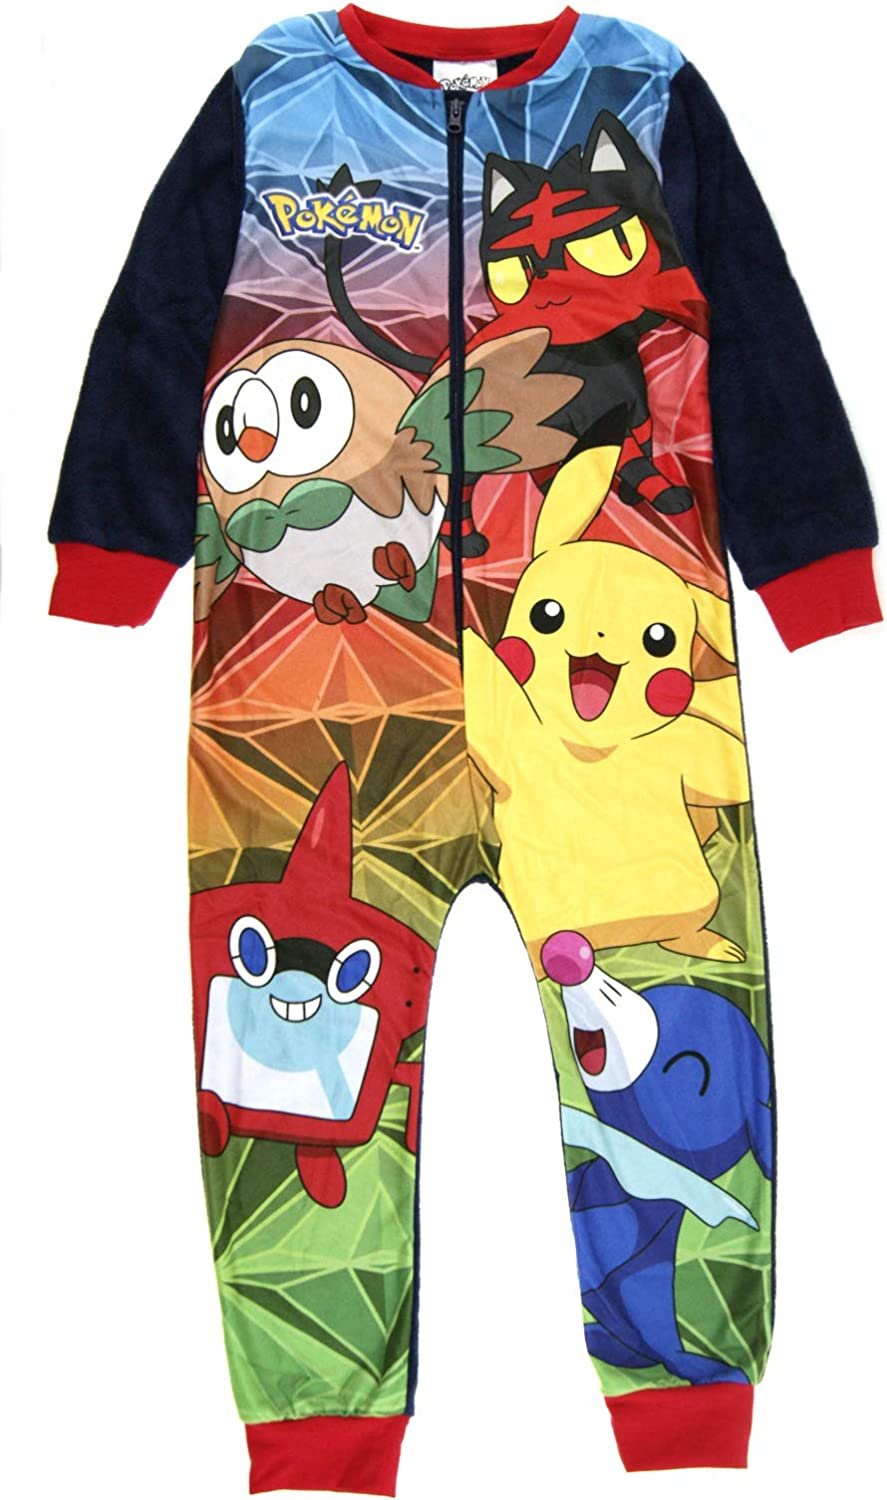 All in One PJ Jumpsuit Featuring Pikachu and Poke Balls Pokemon Onesie for Kids Gift for Boys 3-12 Years Children/'s Onesie with Pokemon Character Pikachu Onesie Pyjama